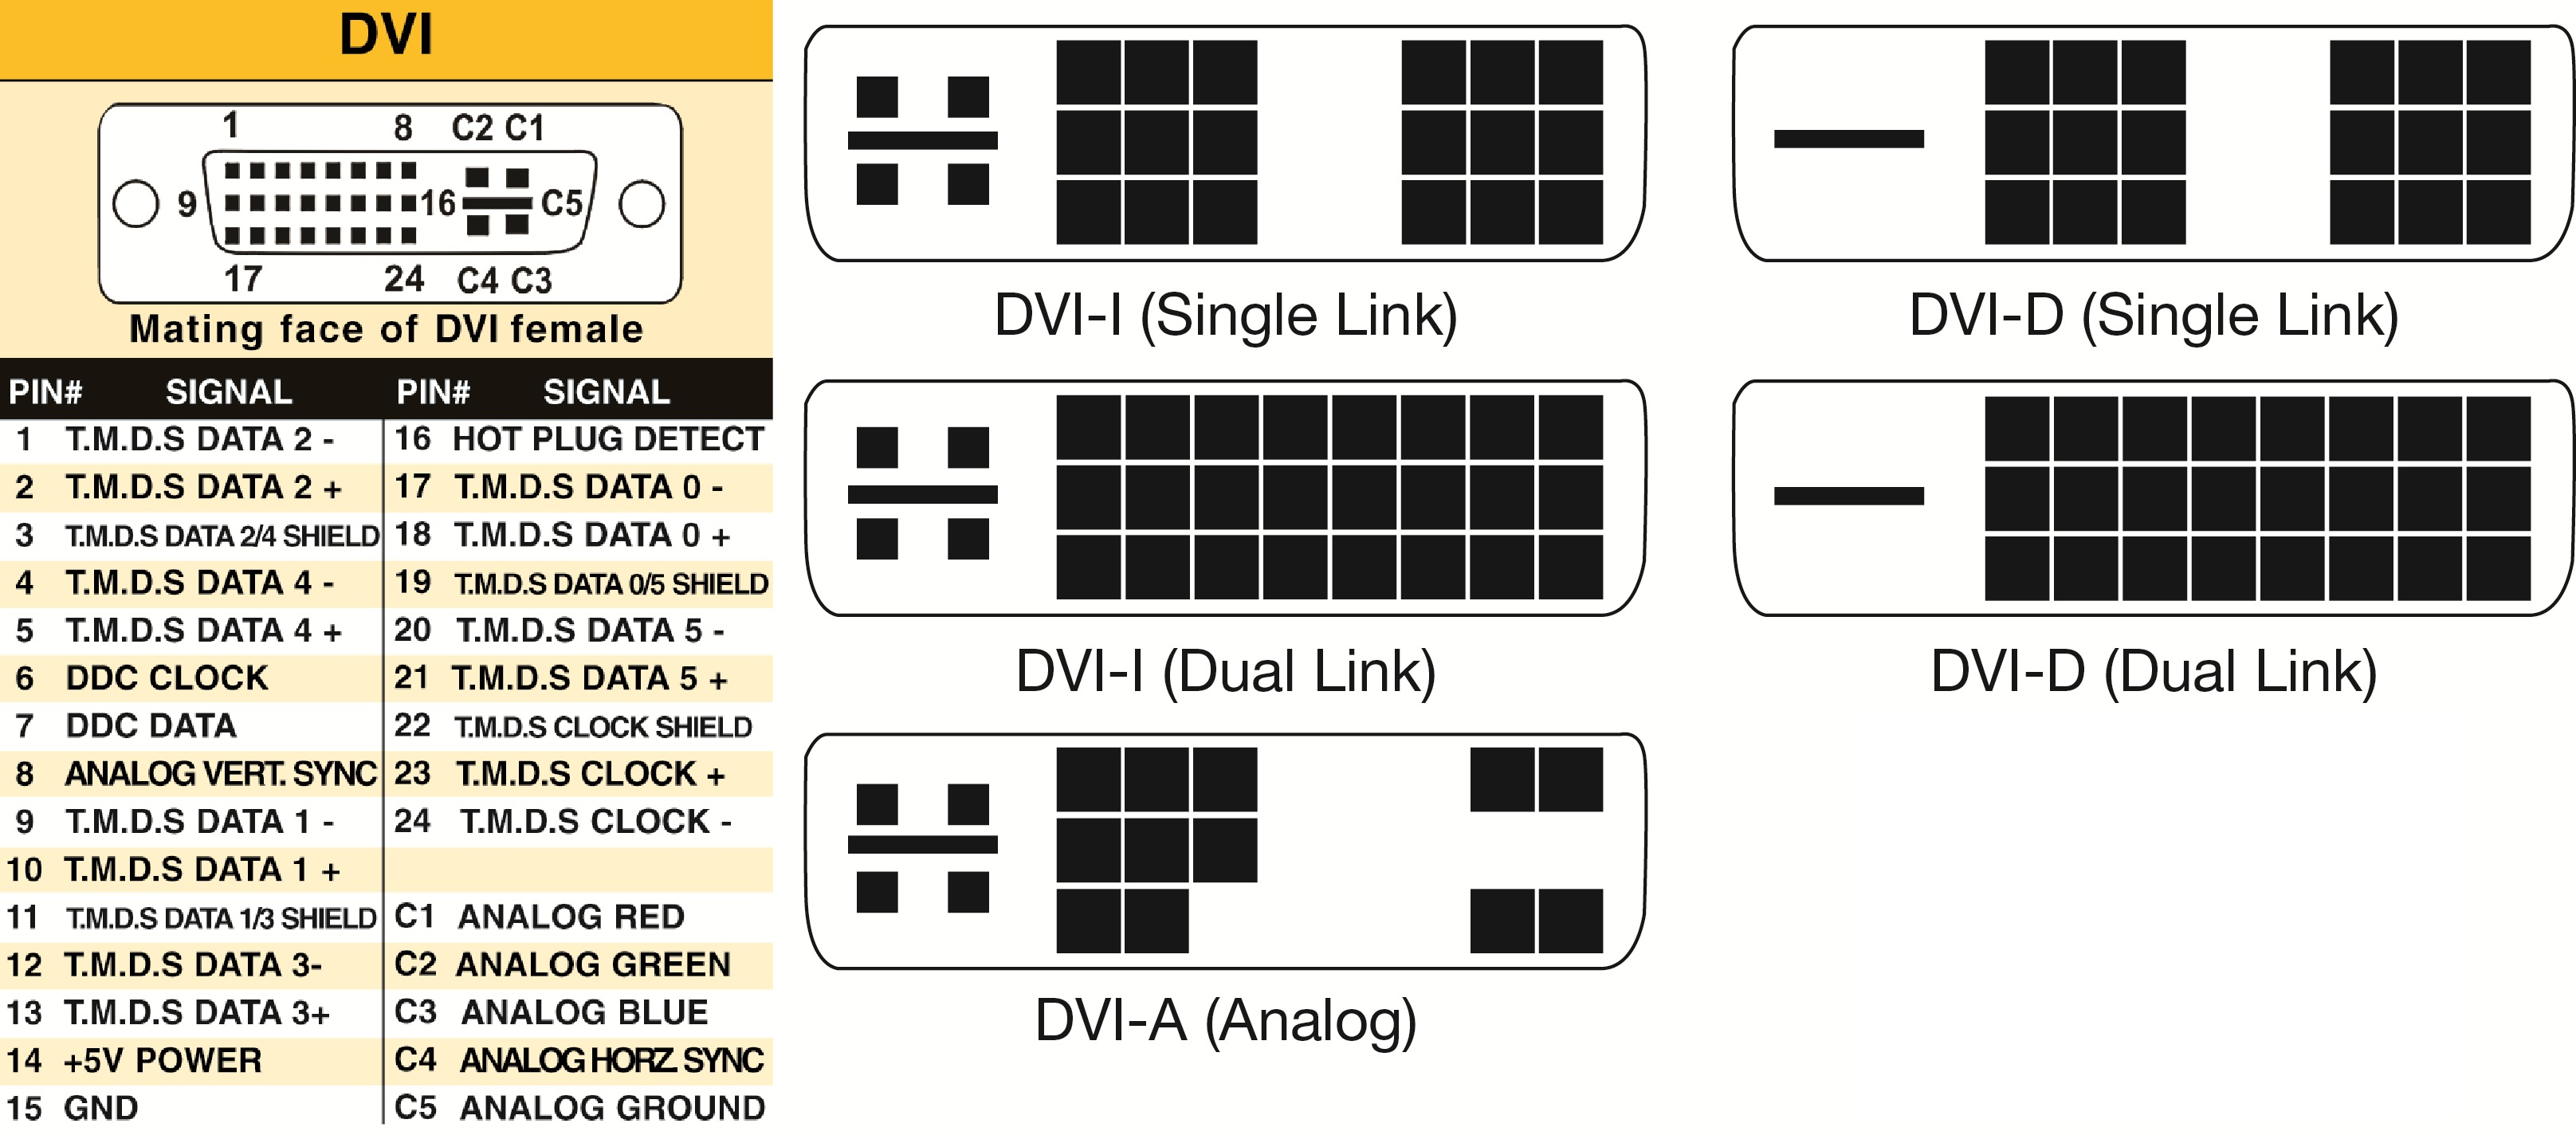 DVI connectors type differences between dvi connectors and signals nti blog DVI -I Pinout Diagram at bayanpartner.co